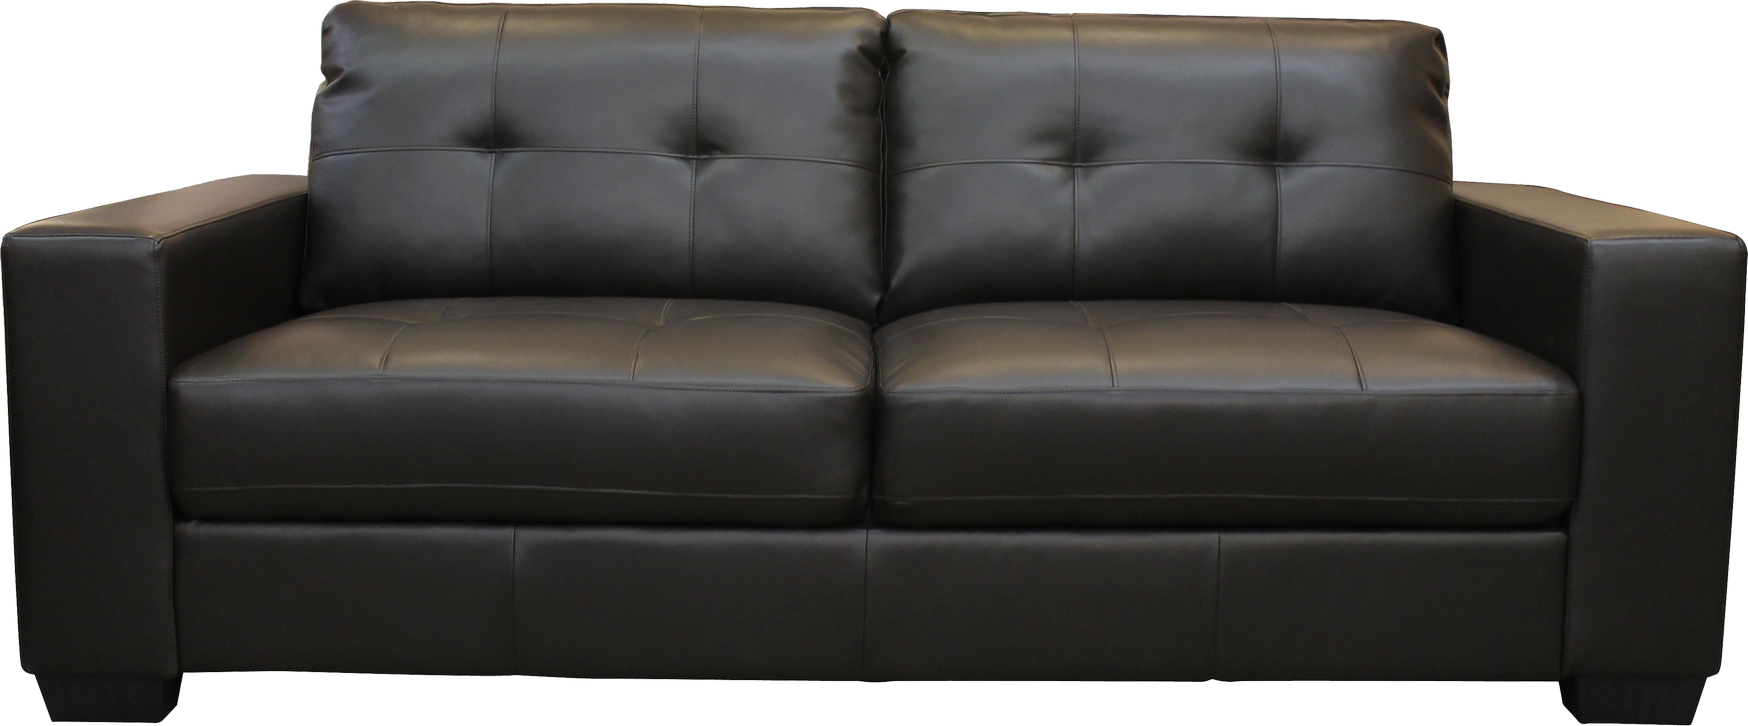 Sofa Png Image Seater Sofa Sofa Trendy Home Decor